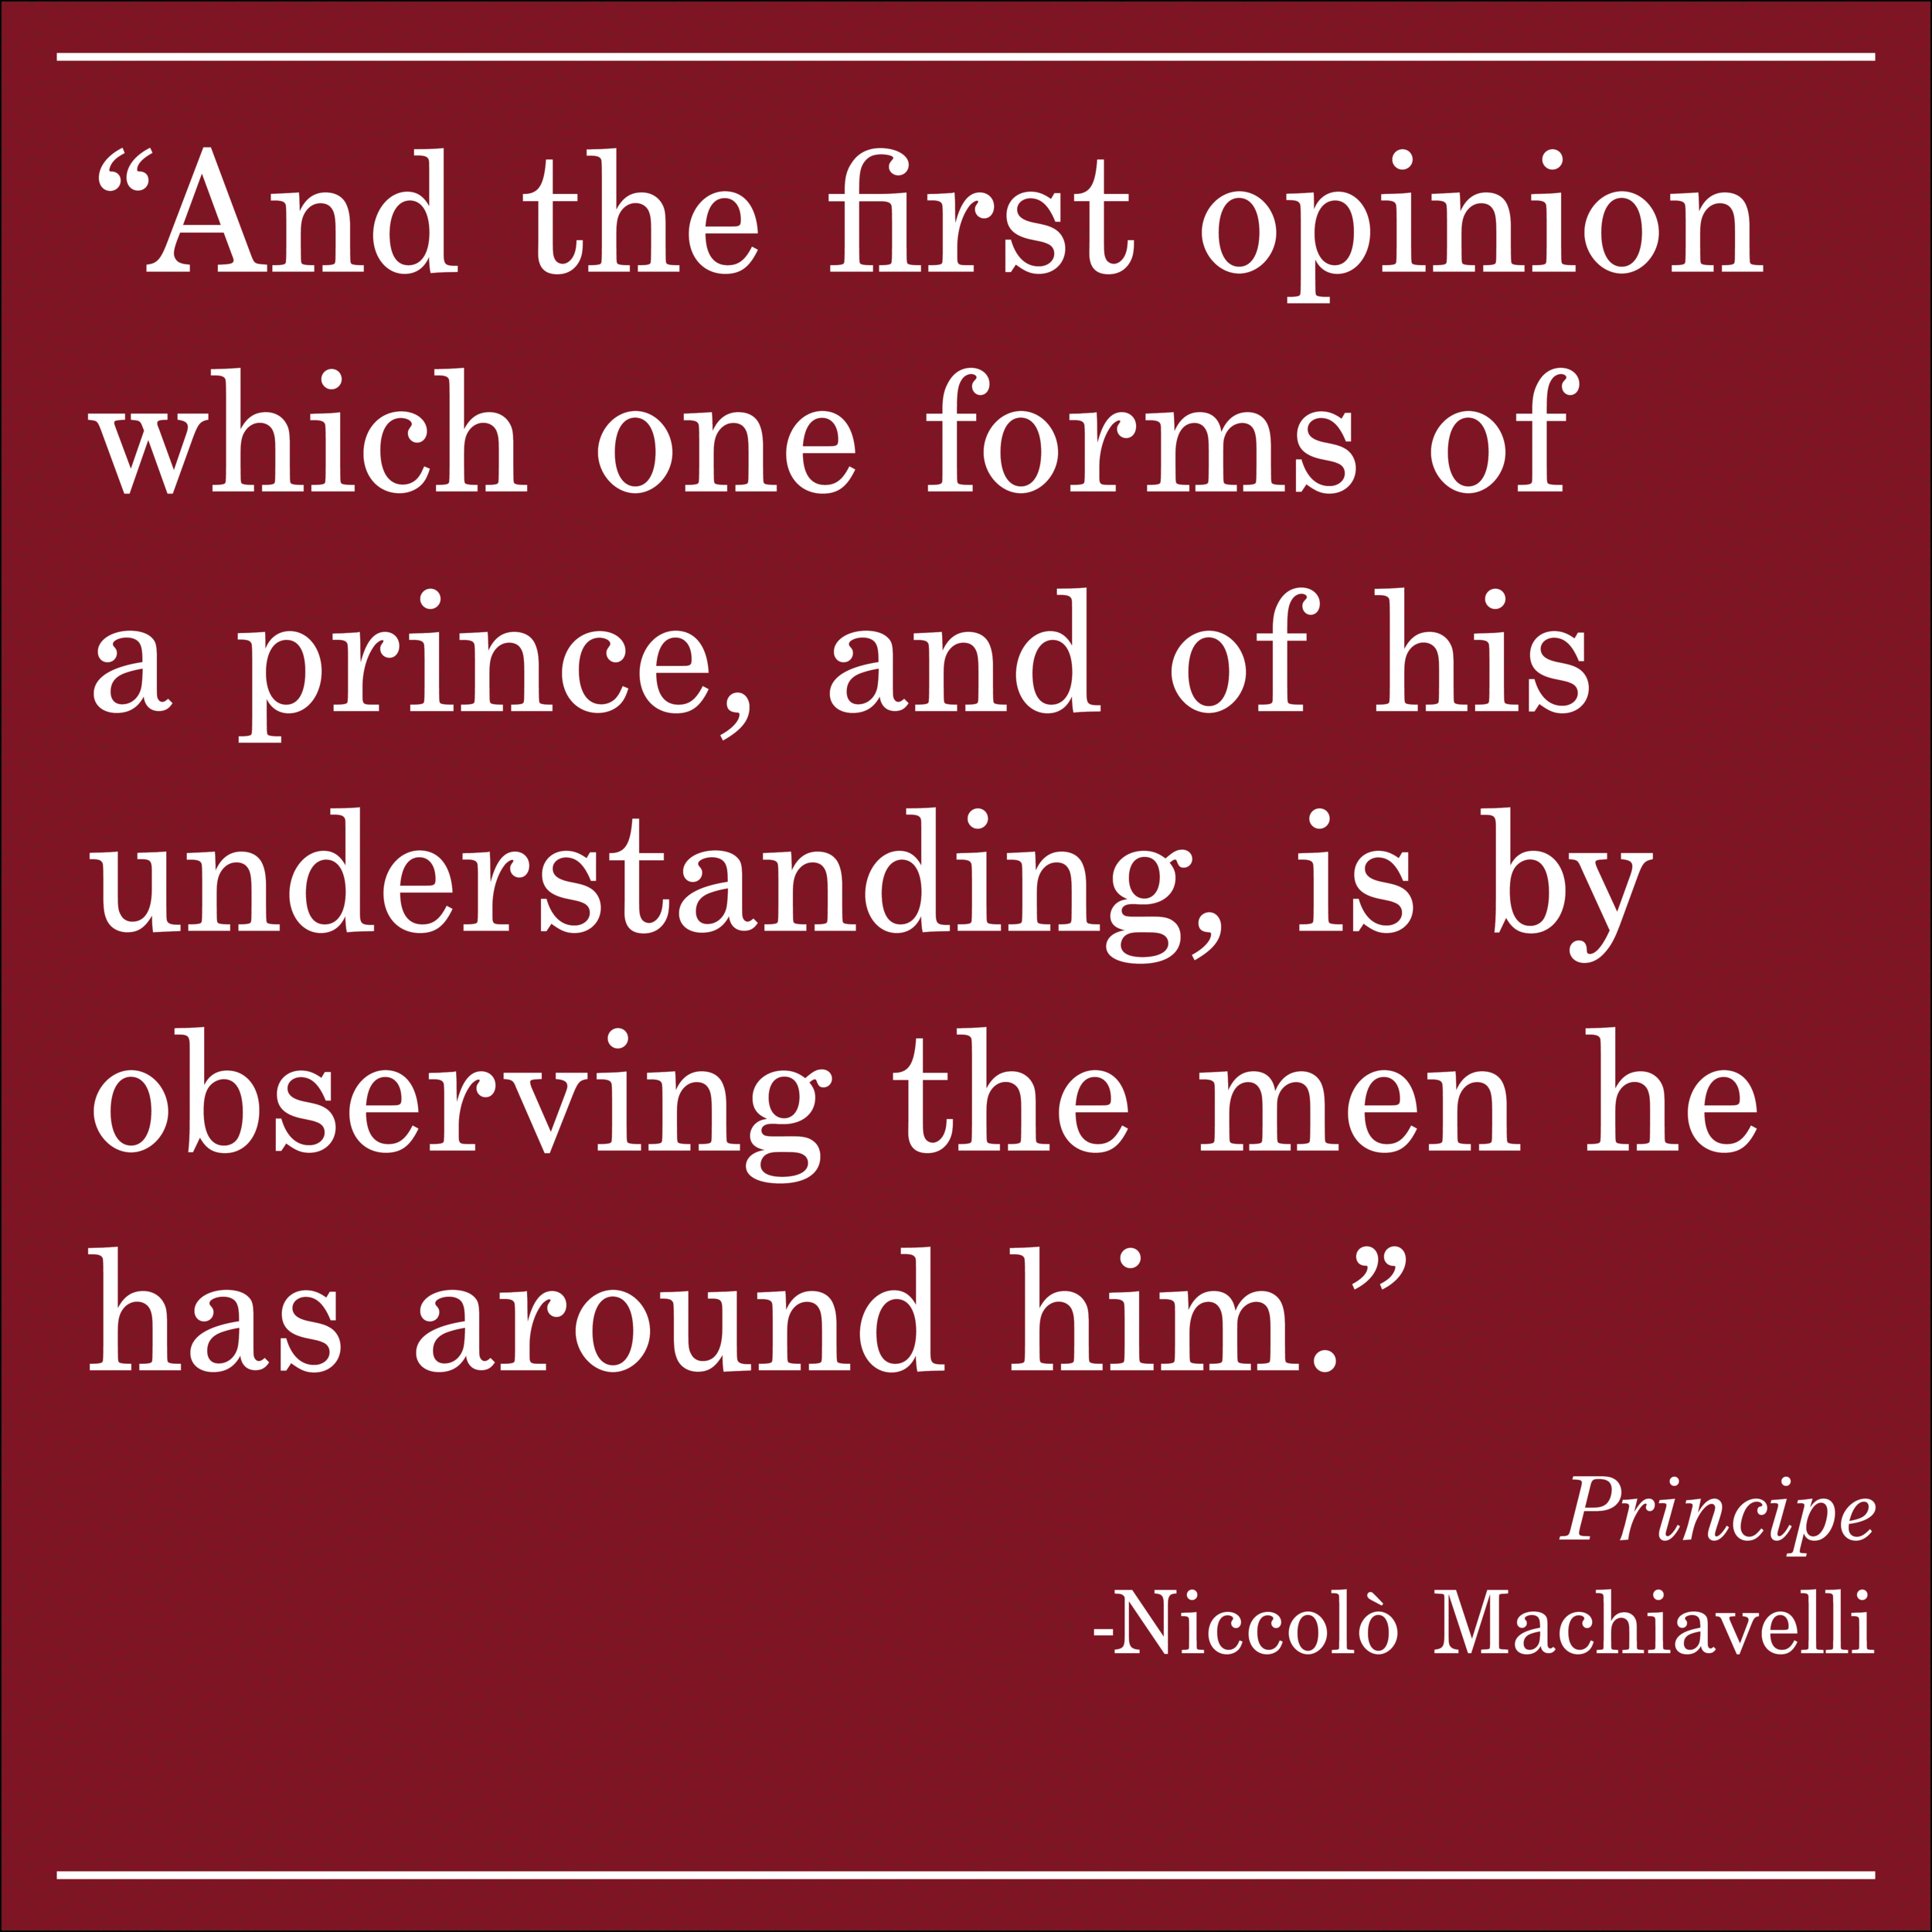 Daily Quote Pincipe by Machiavelli